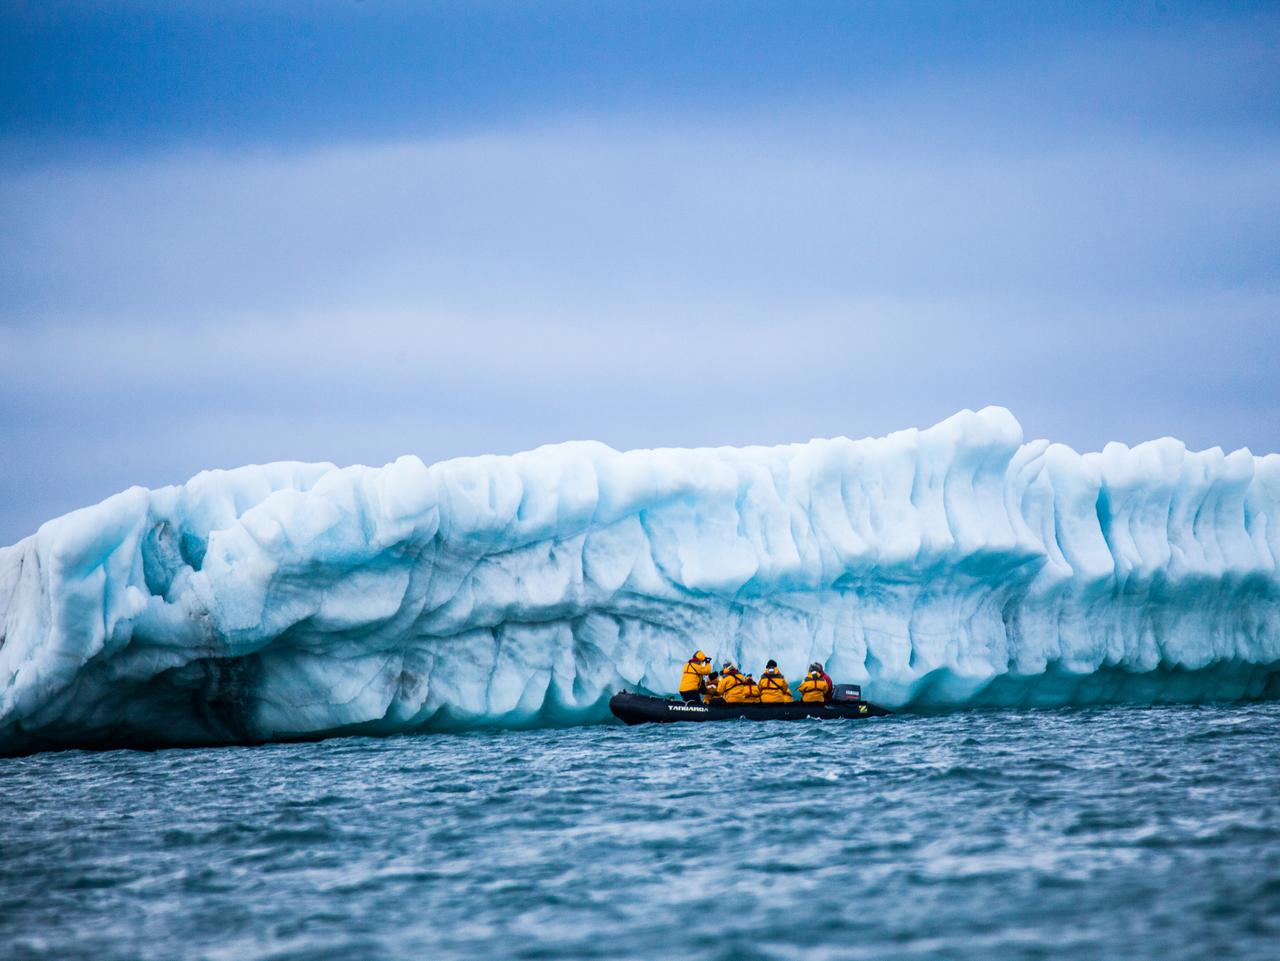 Arctic,Russia - July 29, 2016: Zodiak with tourists in front of Iceberg arctic ocean. Russian Arctic